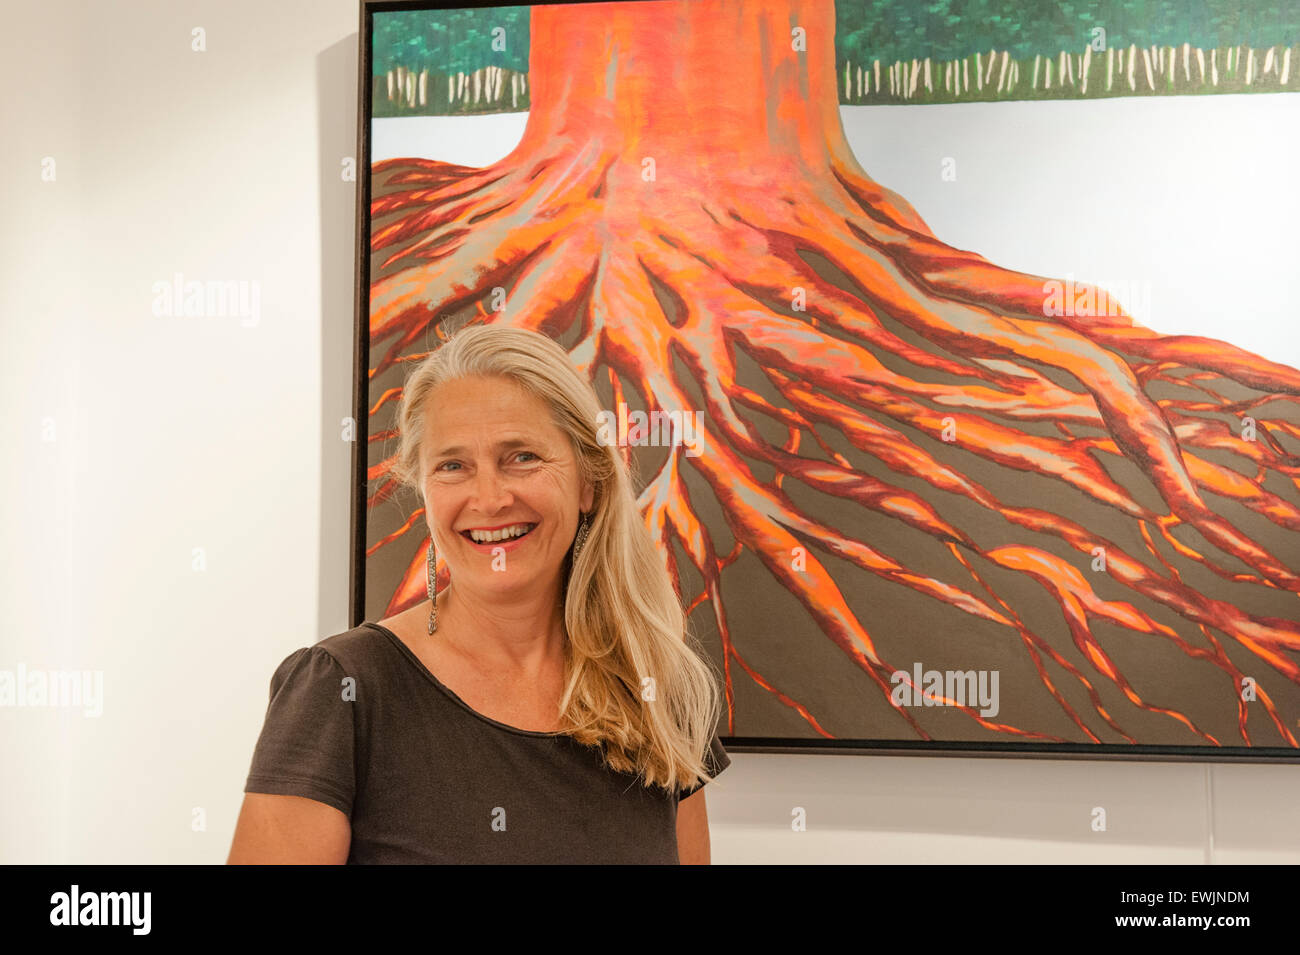 Diana Liljelund from Finland, artist and gallery owner in Bugarach, Aude, France - Stock Image